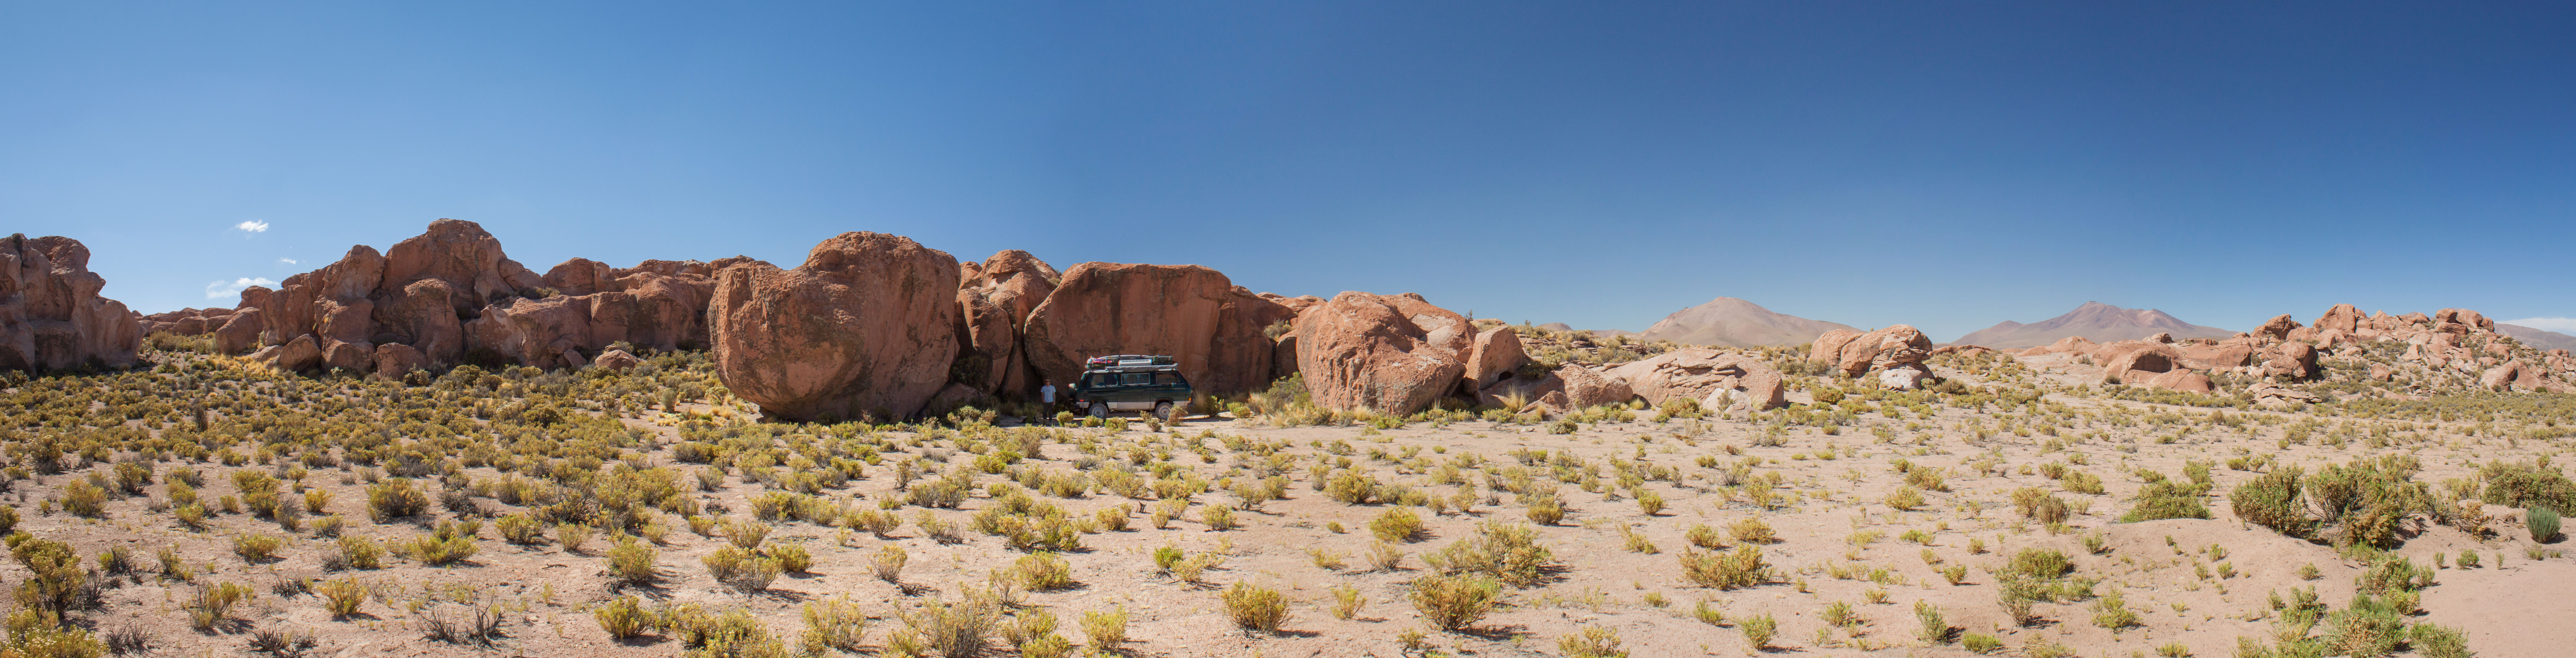 Beautiful campsite among the endless sandstone boulders.